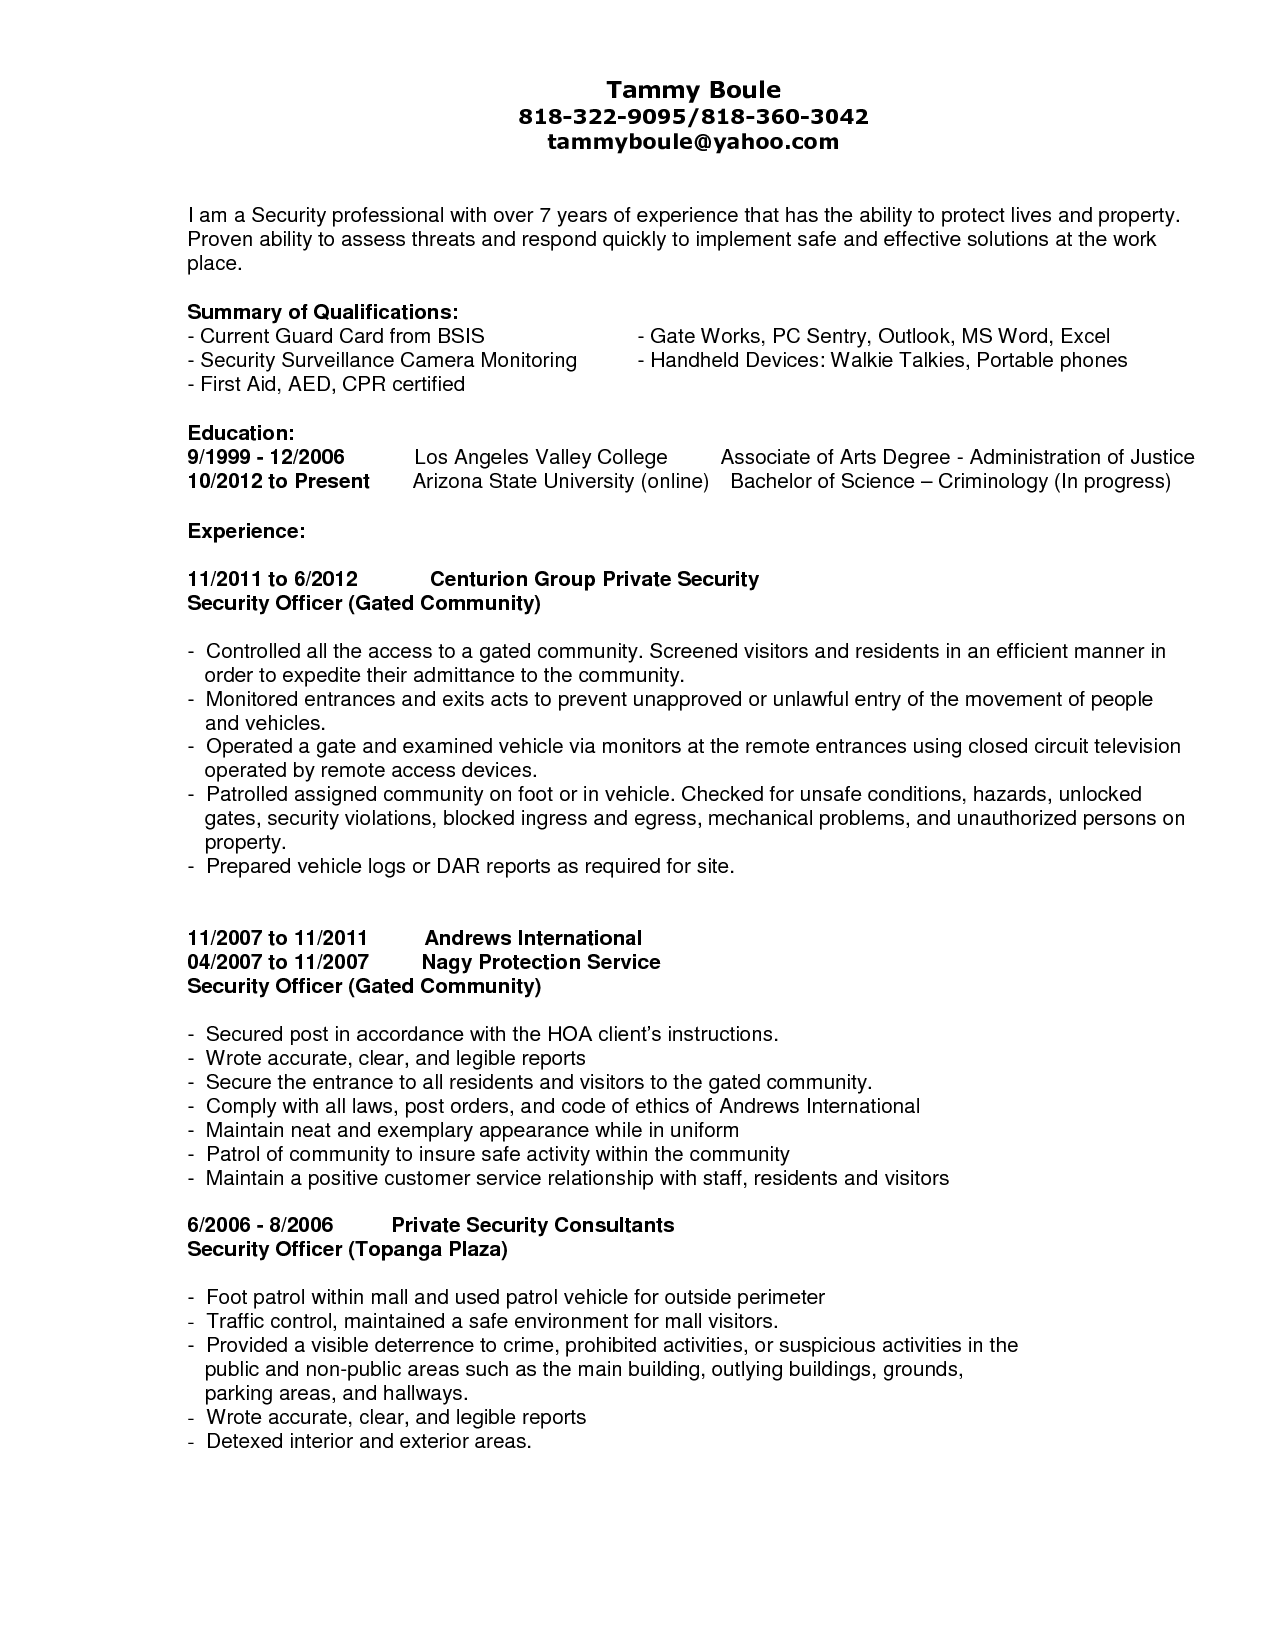 Security Officer Resume Sample Guard Security Officer Resume Ideas  Httpwwwjobresumewebsite